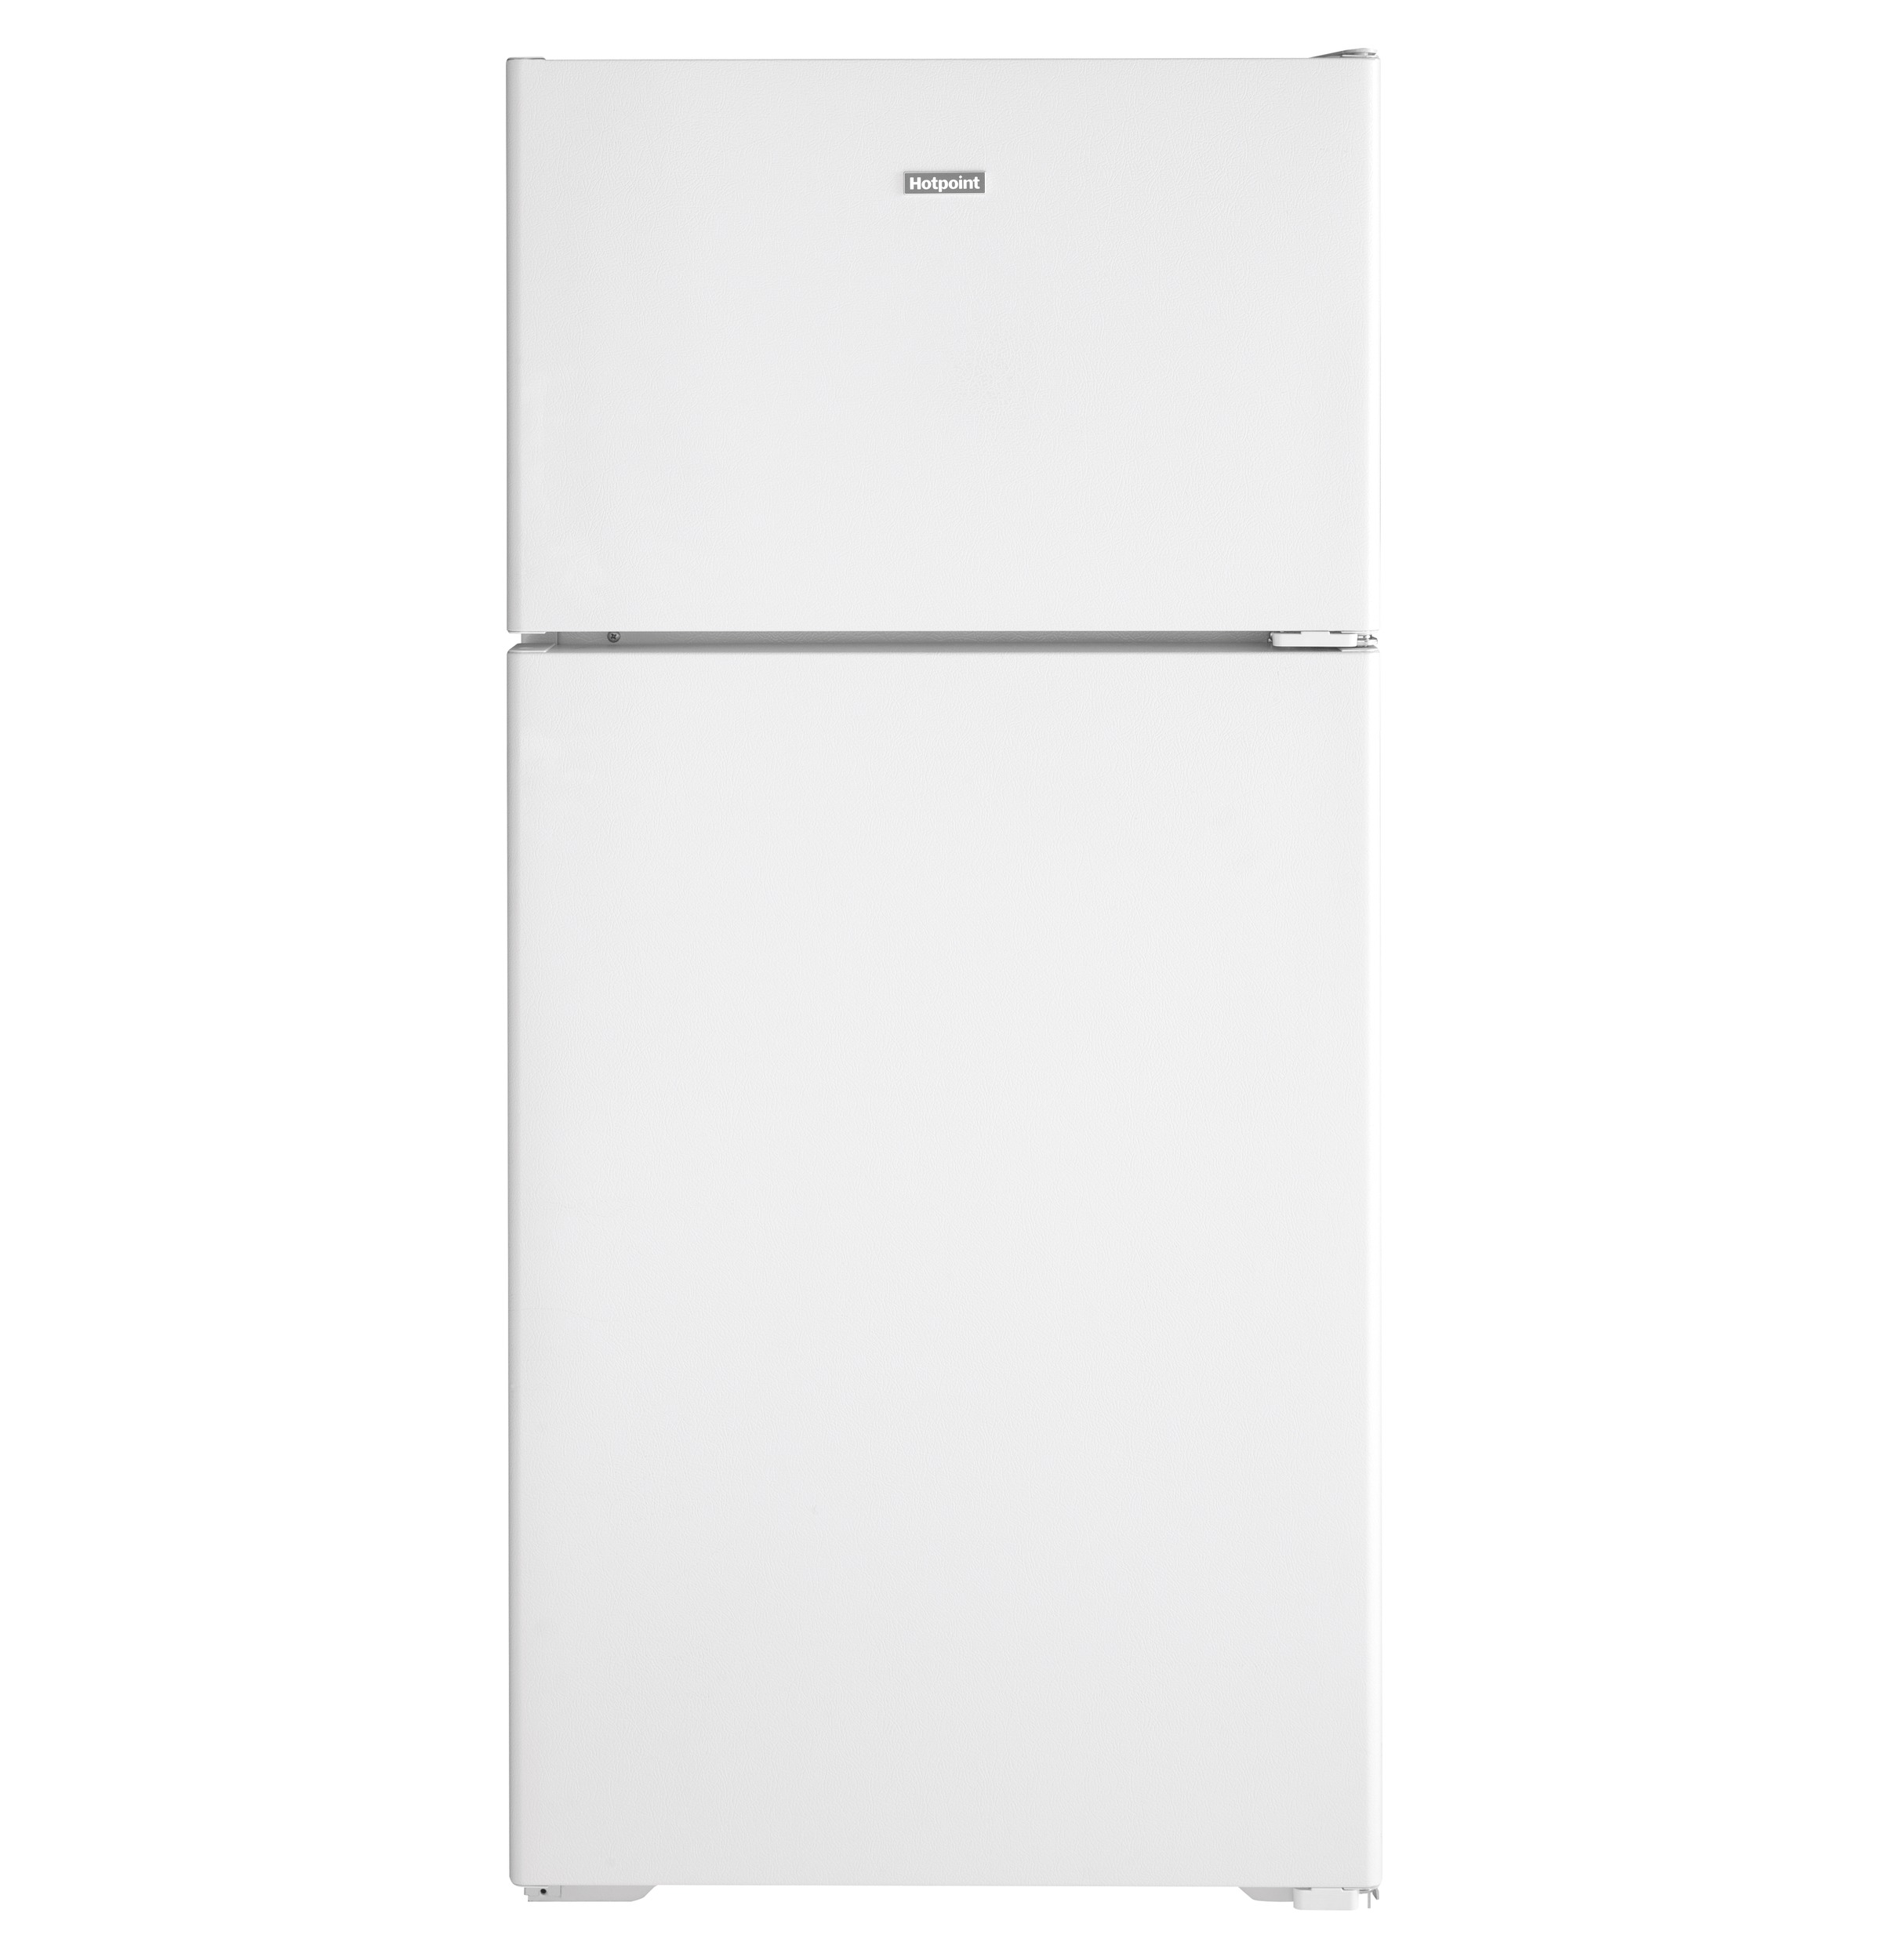 Hotpoint Hotpoint® ENERGY STAR® 15.6 Cu. Ft. Recessed Handle Top-Freezer Refrigerator